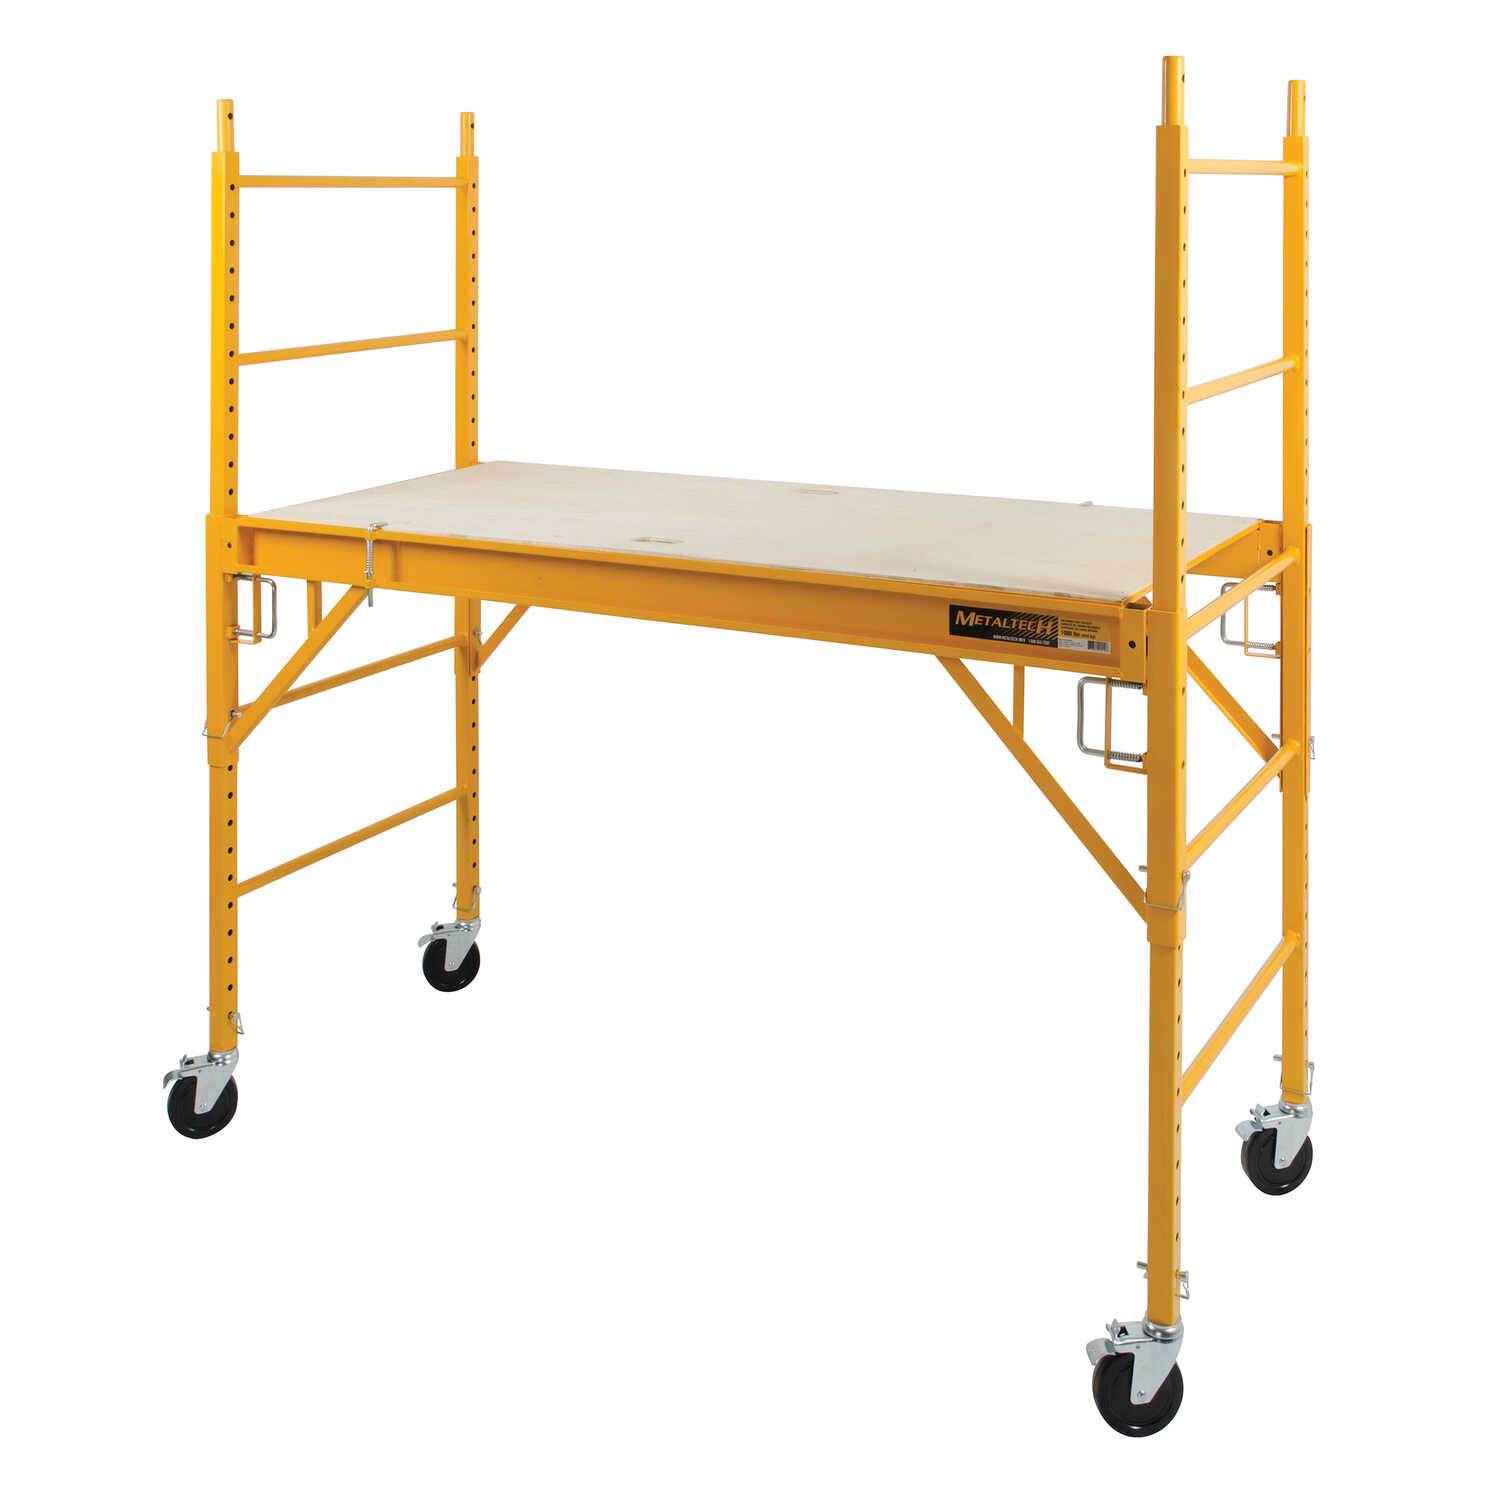 Metaltech  Steel  Yellow  Work Platform